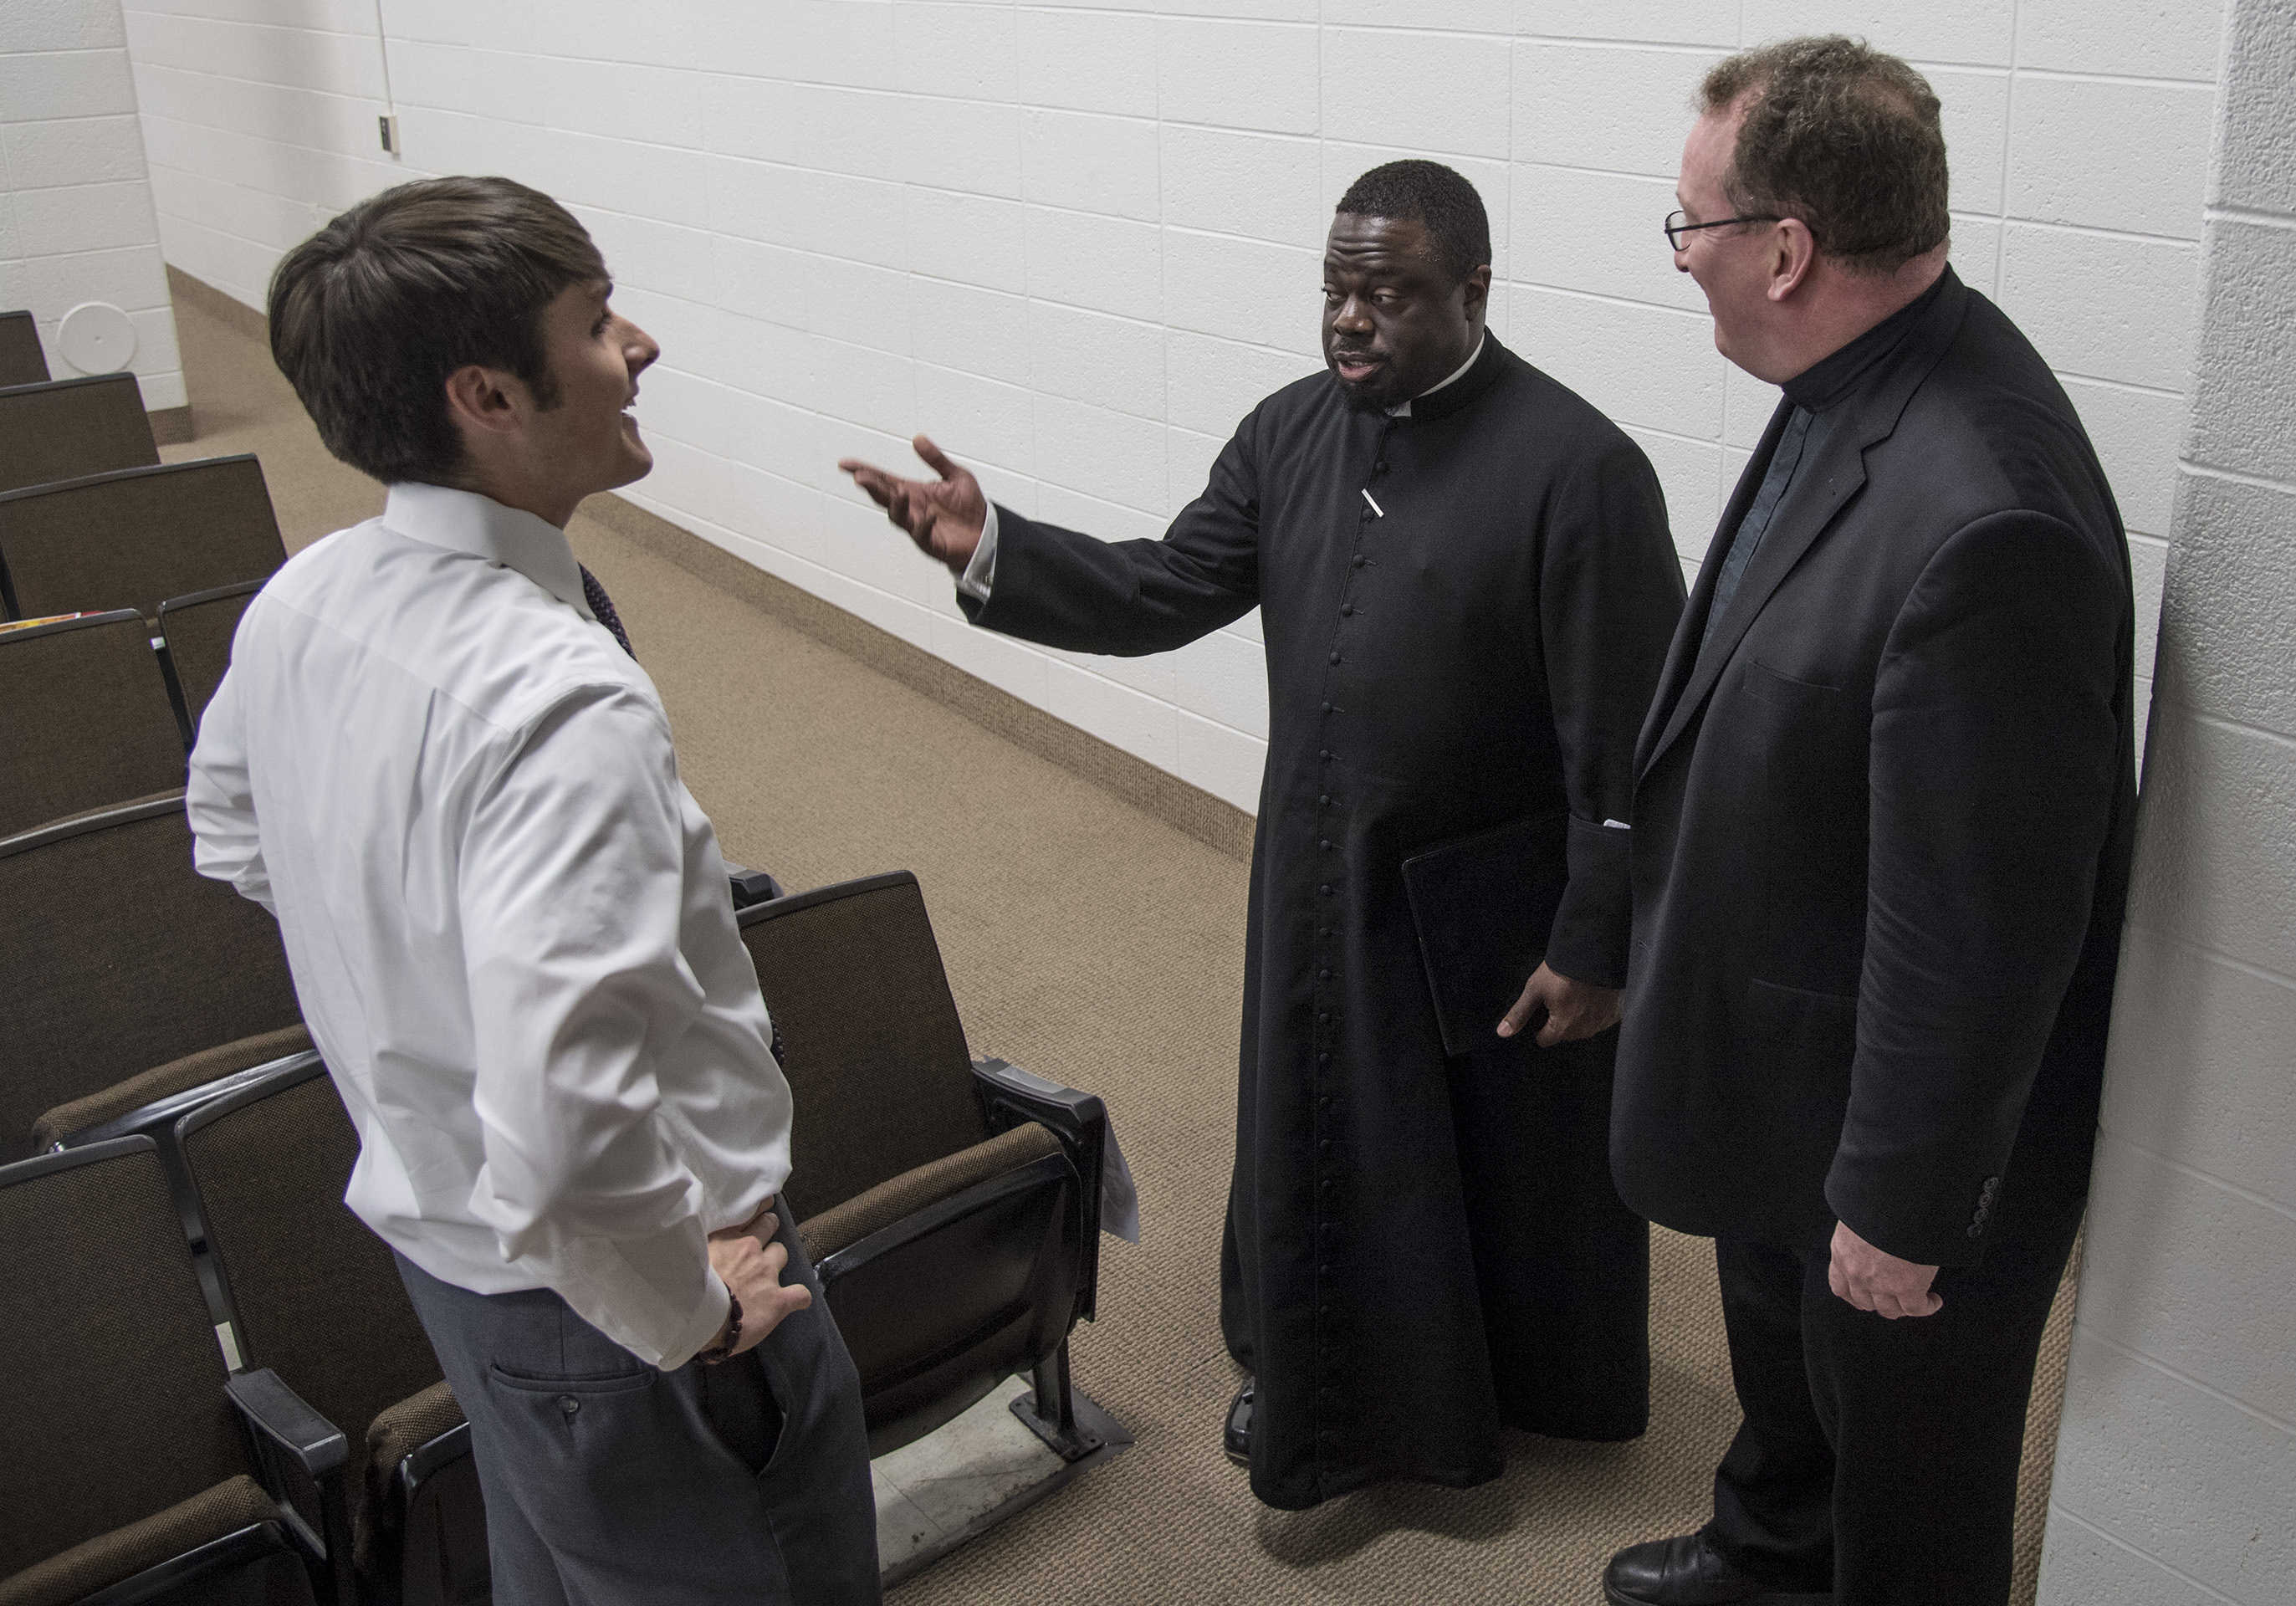 St. Charles Borromeo seminarian James Moses (center), from Brooklyn, speaks with Father Stephen DeLacy (cq, right), vocation director for the Archdiocese, and Bill Rose, producer and director of the short documentary film Tolton, prior to an event at the seminary April 2, 2017 designed to recruit African American Catholics into the priesthood.  The short film Rose debuted was on the life and struggles of the first black Catholic priest, Augustus Tolton.  CLEM MURRAY / Staff Photographer